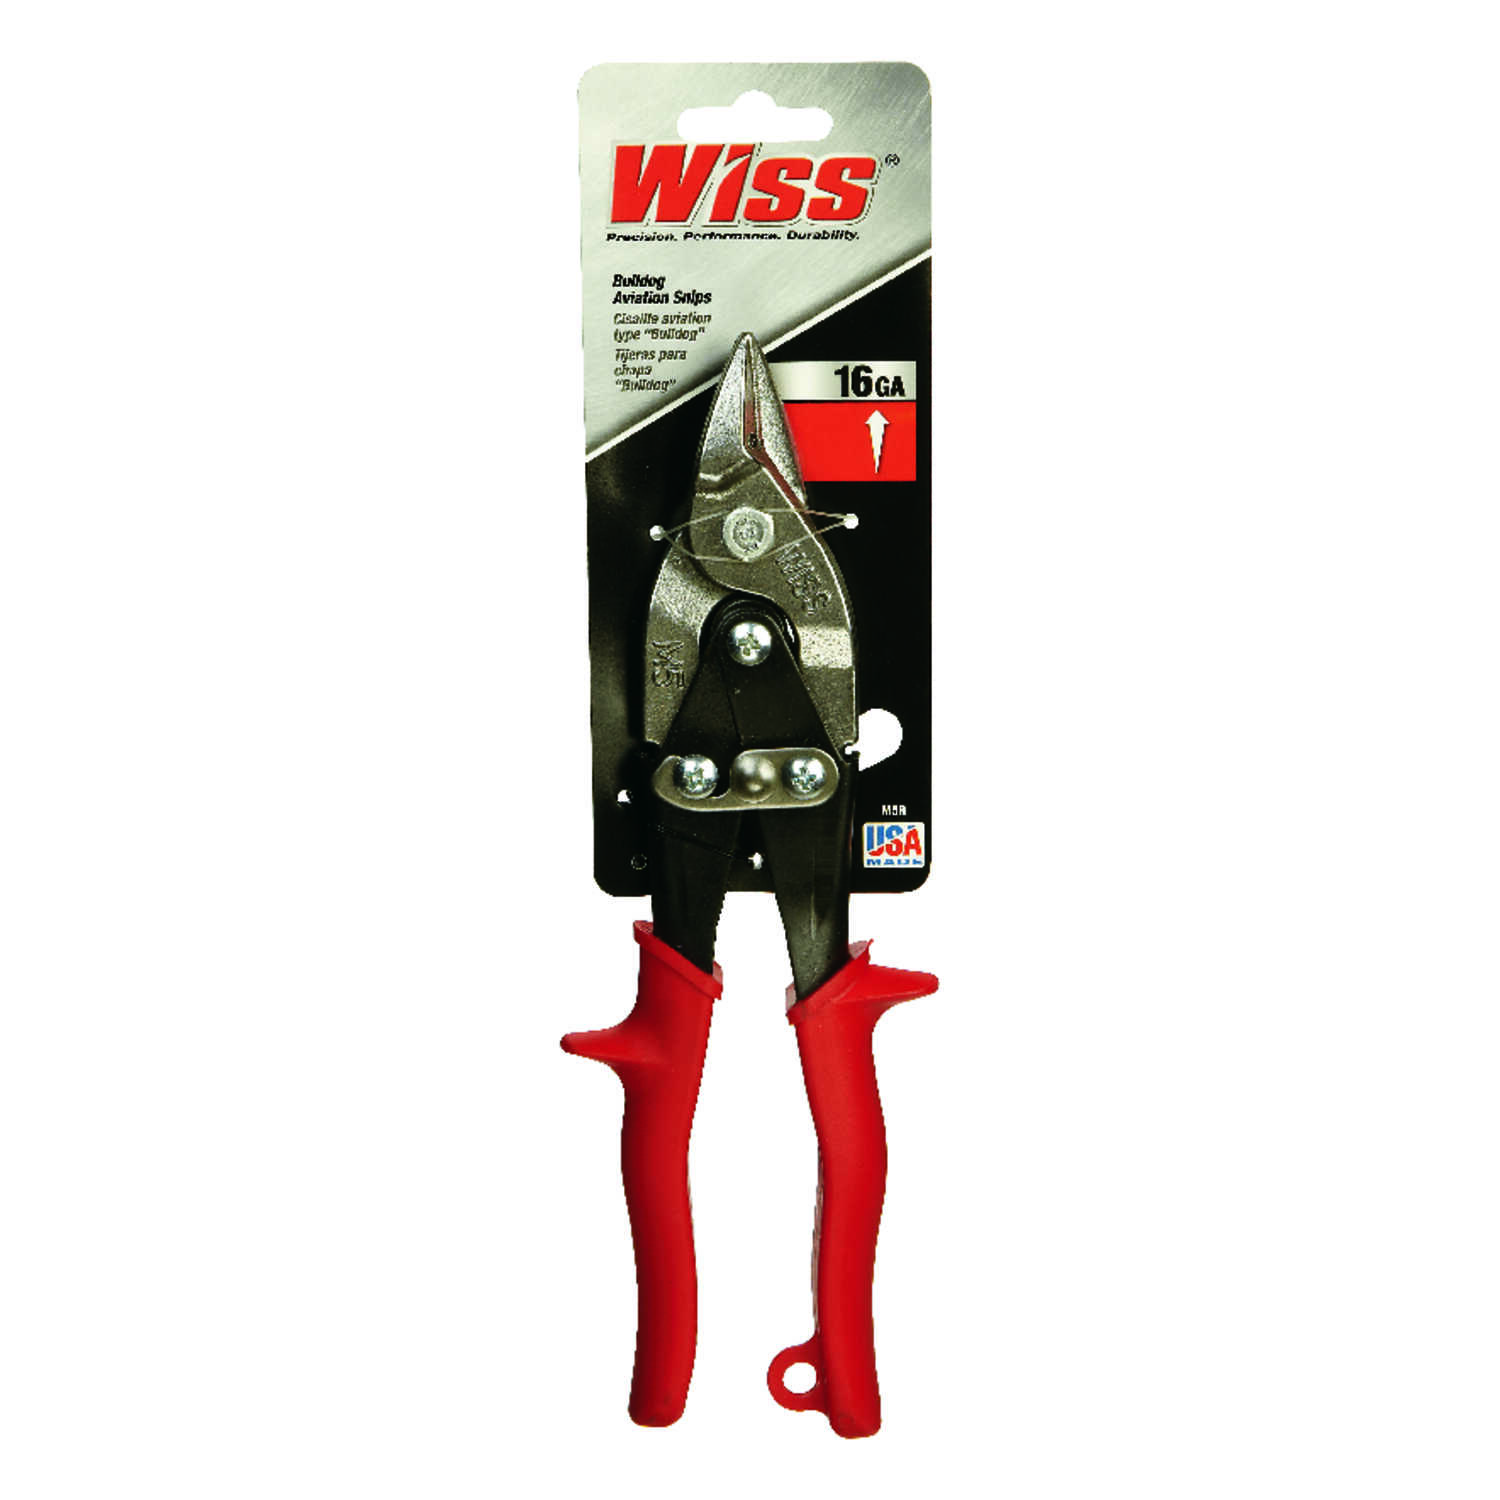 Wiss  9-1/4 in. Stainless Steel  Serrated  Bulldog Aviation Snips  1 pk